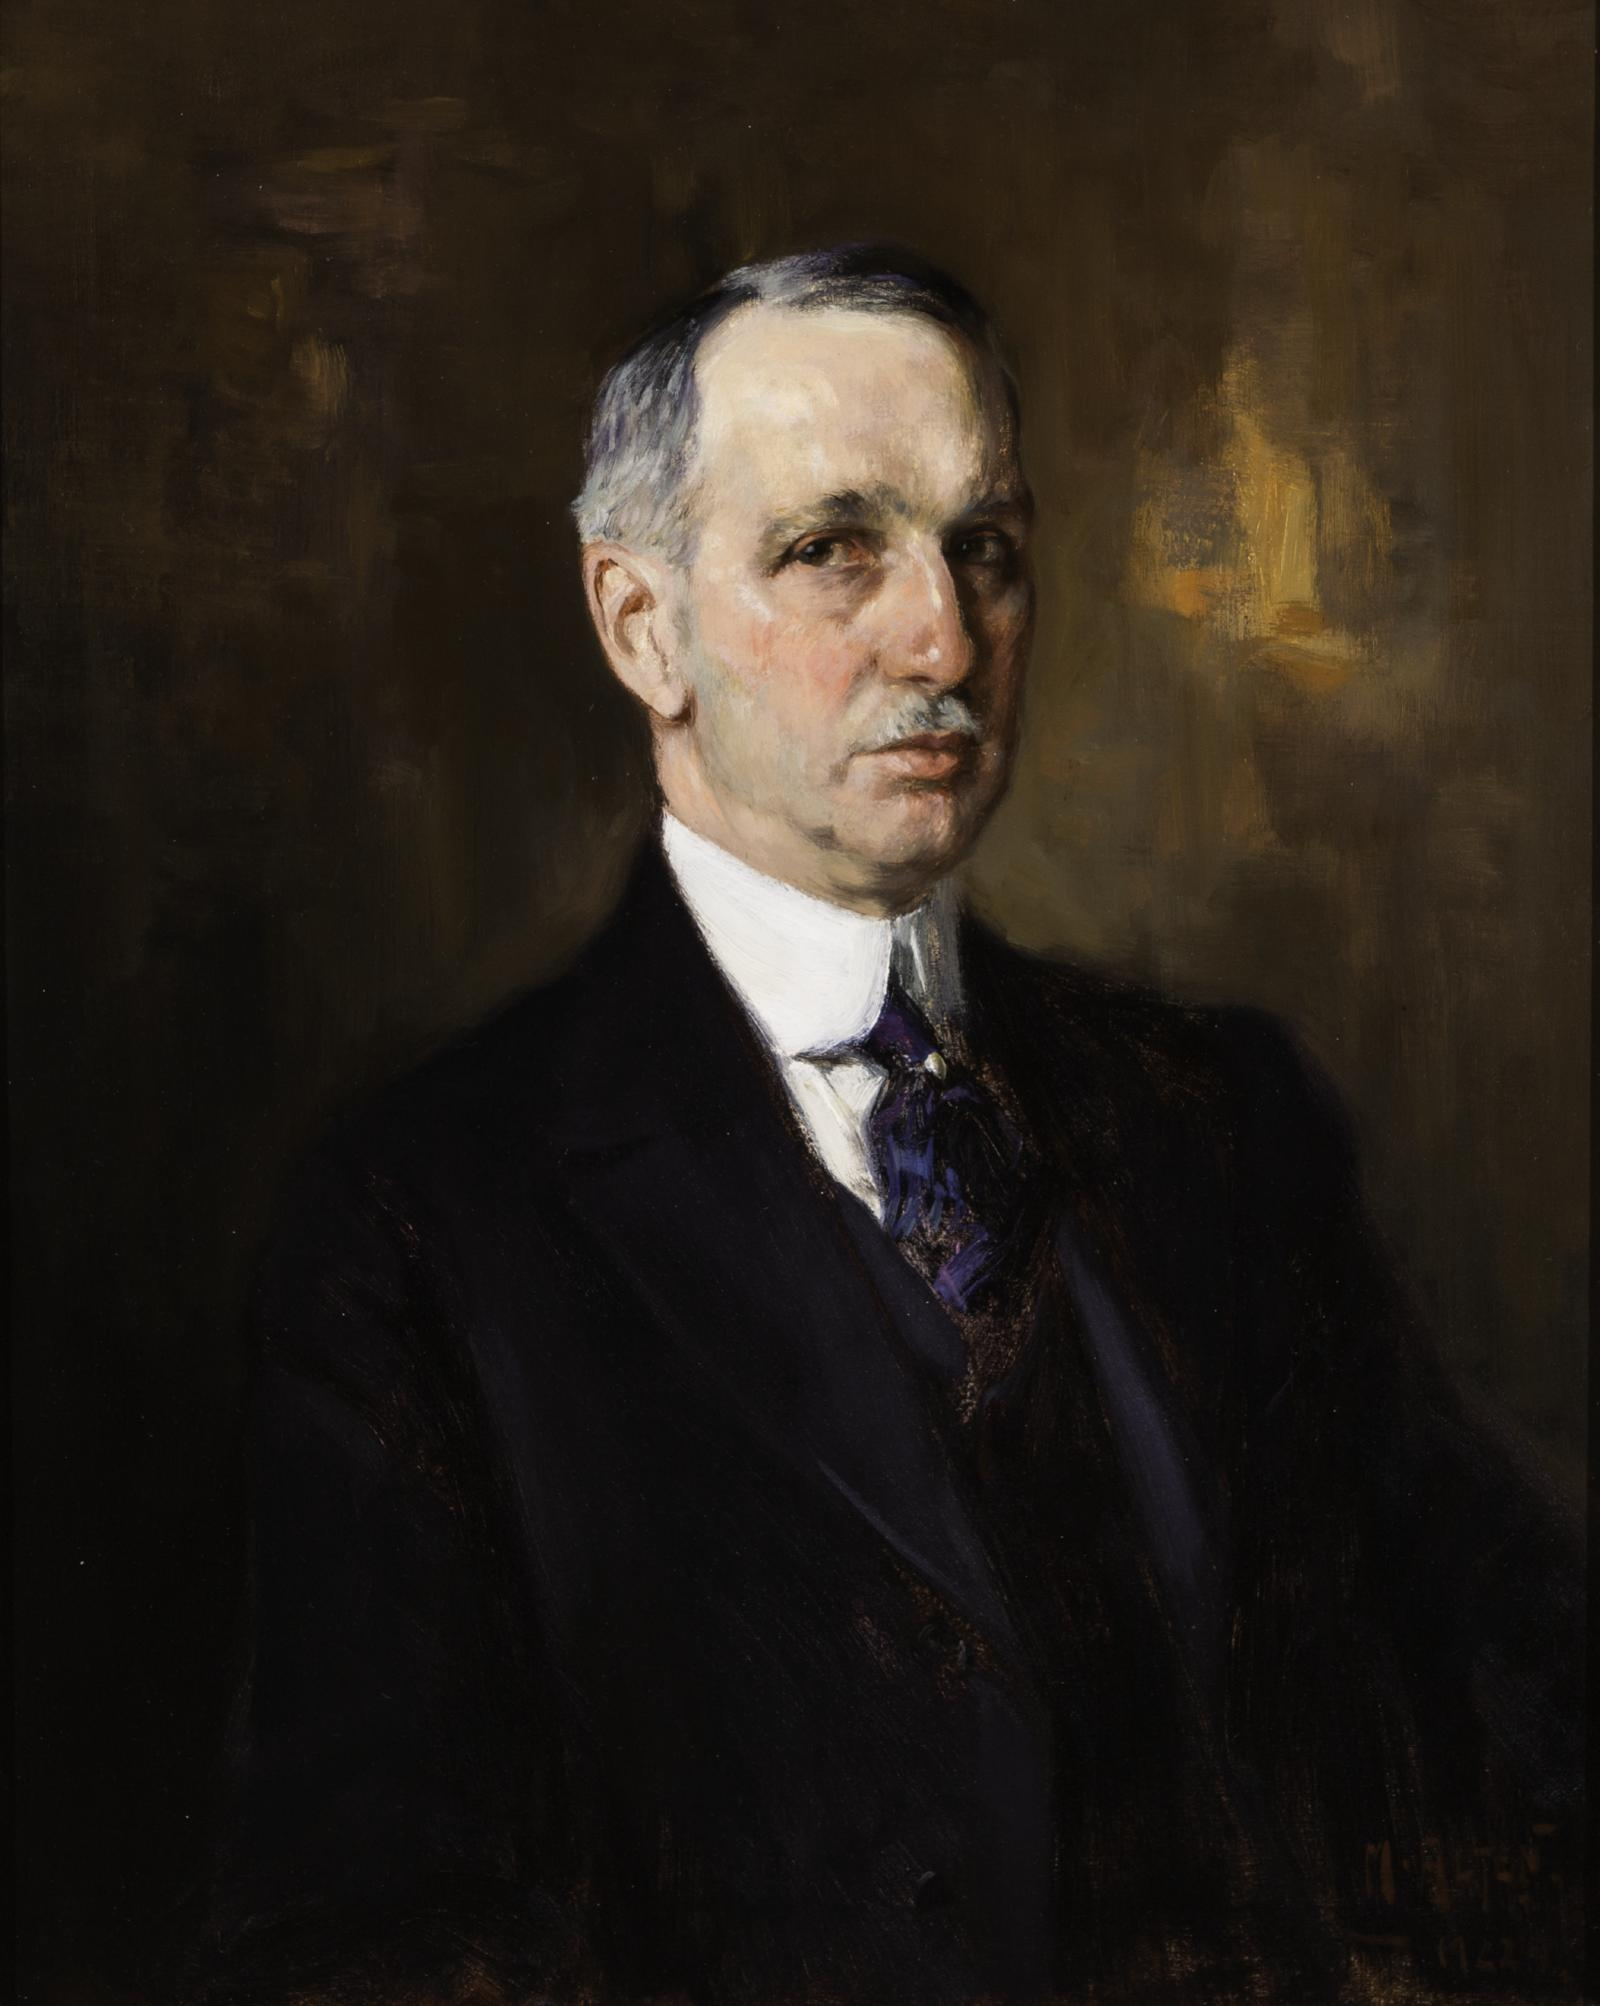 A portrait of an aging gentleman with gray hair and a mustache in a 20th century black suit, leaning to the right.